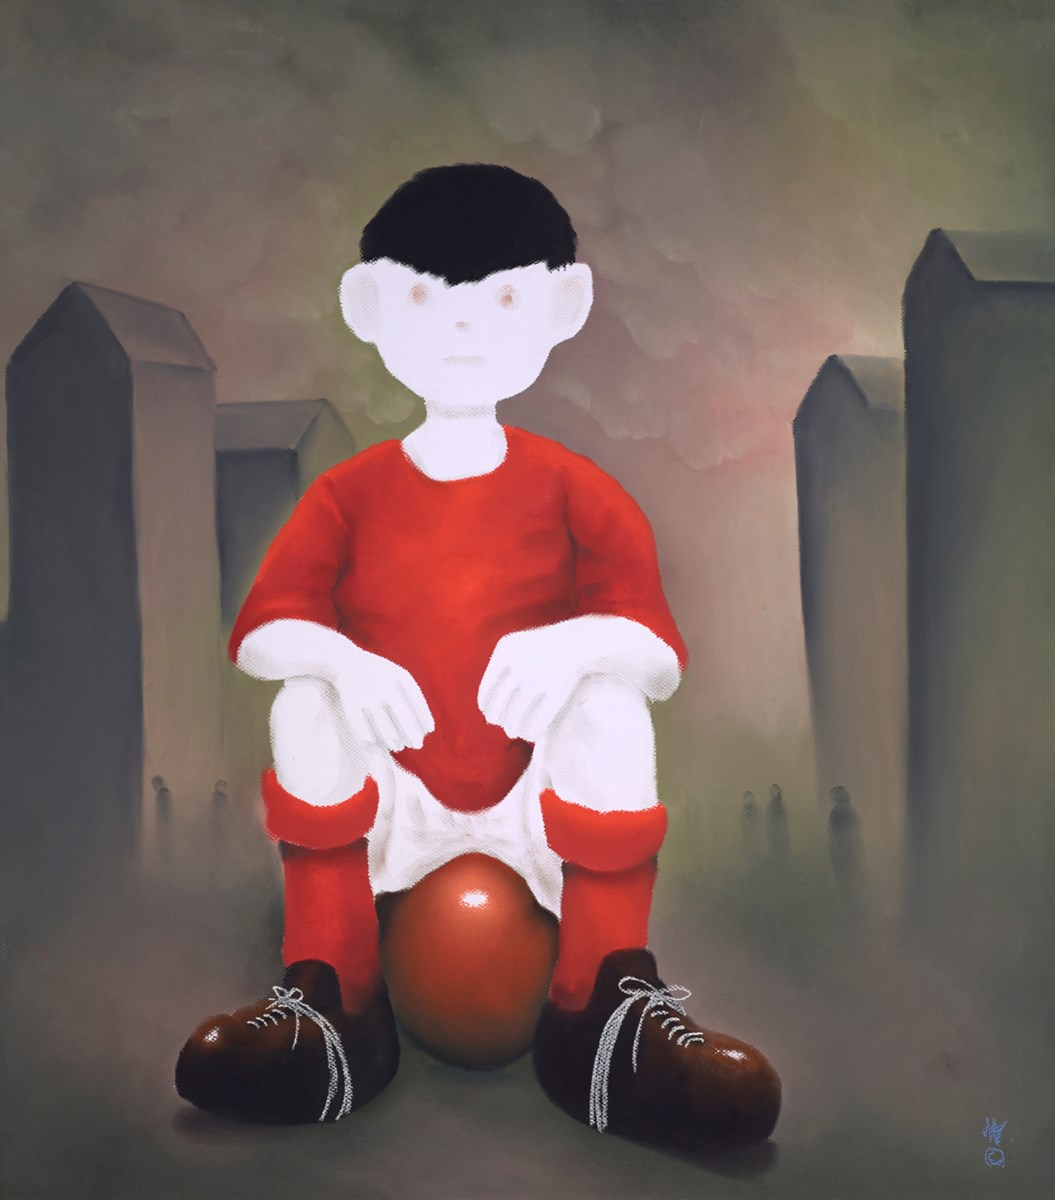 Boy with a Dream by mackenzie thorpe -  sized 28x32 inches. Available from Whitewall Galleries